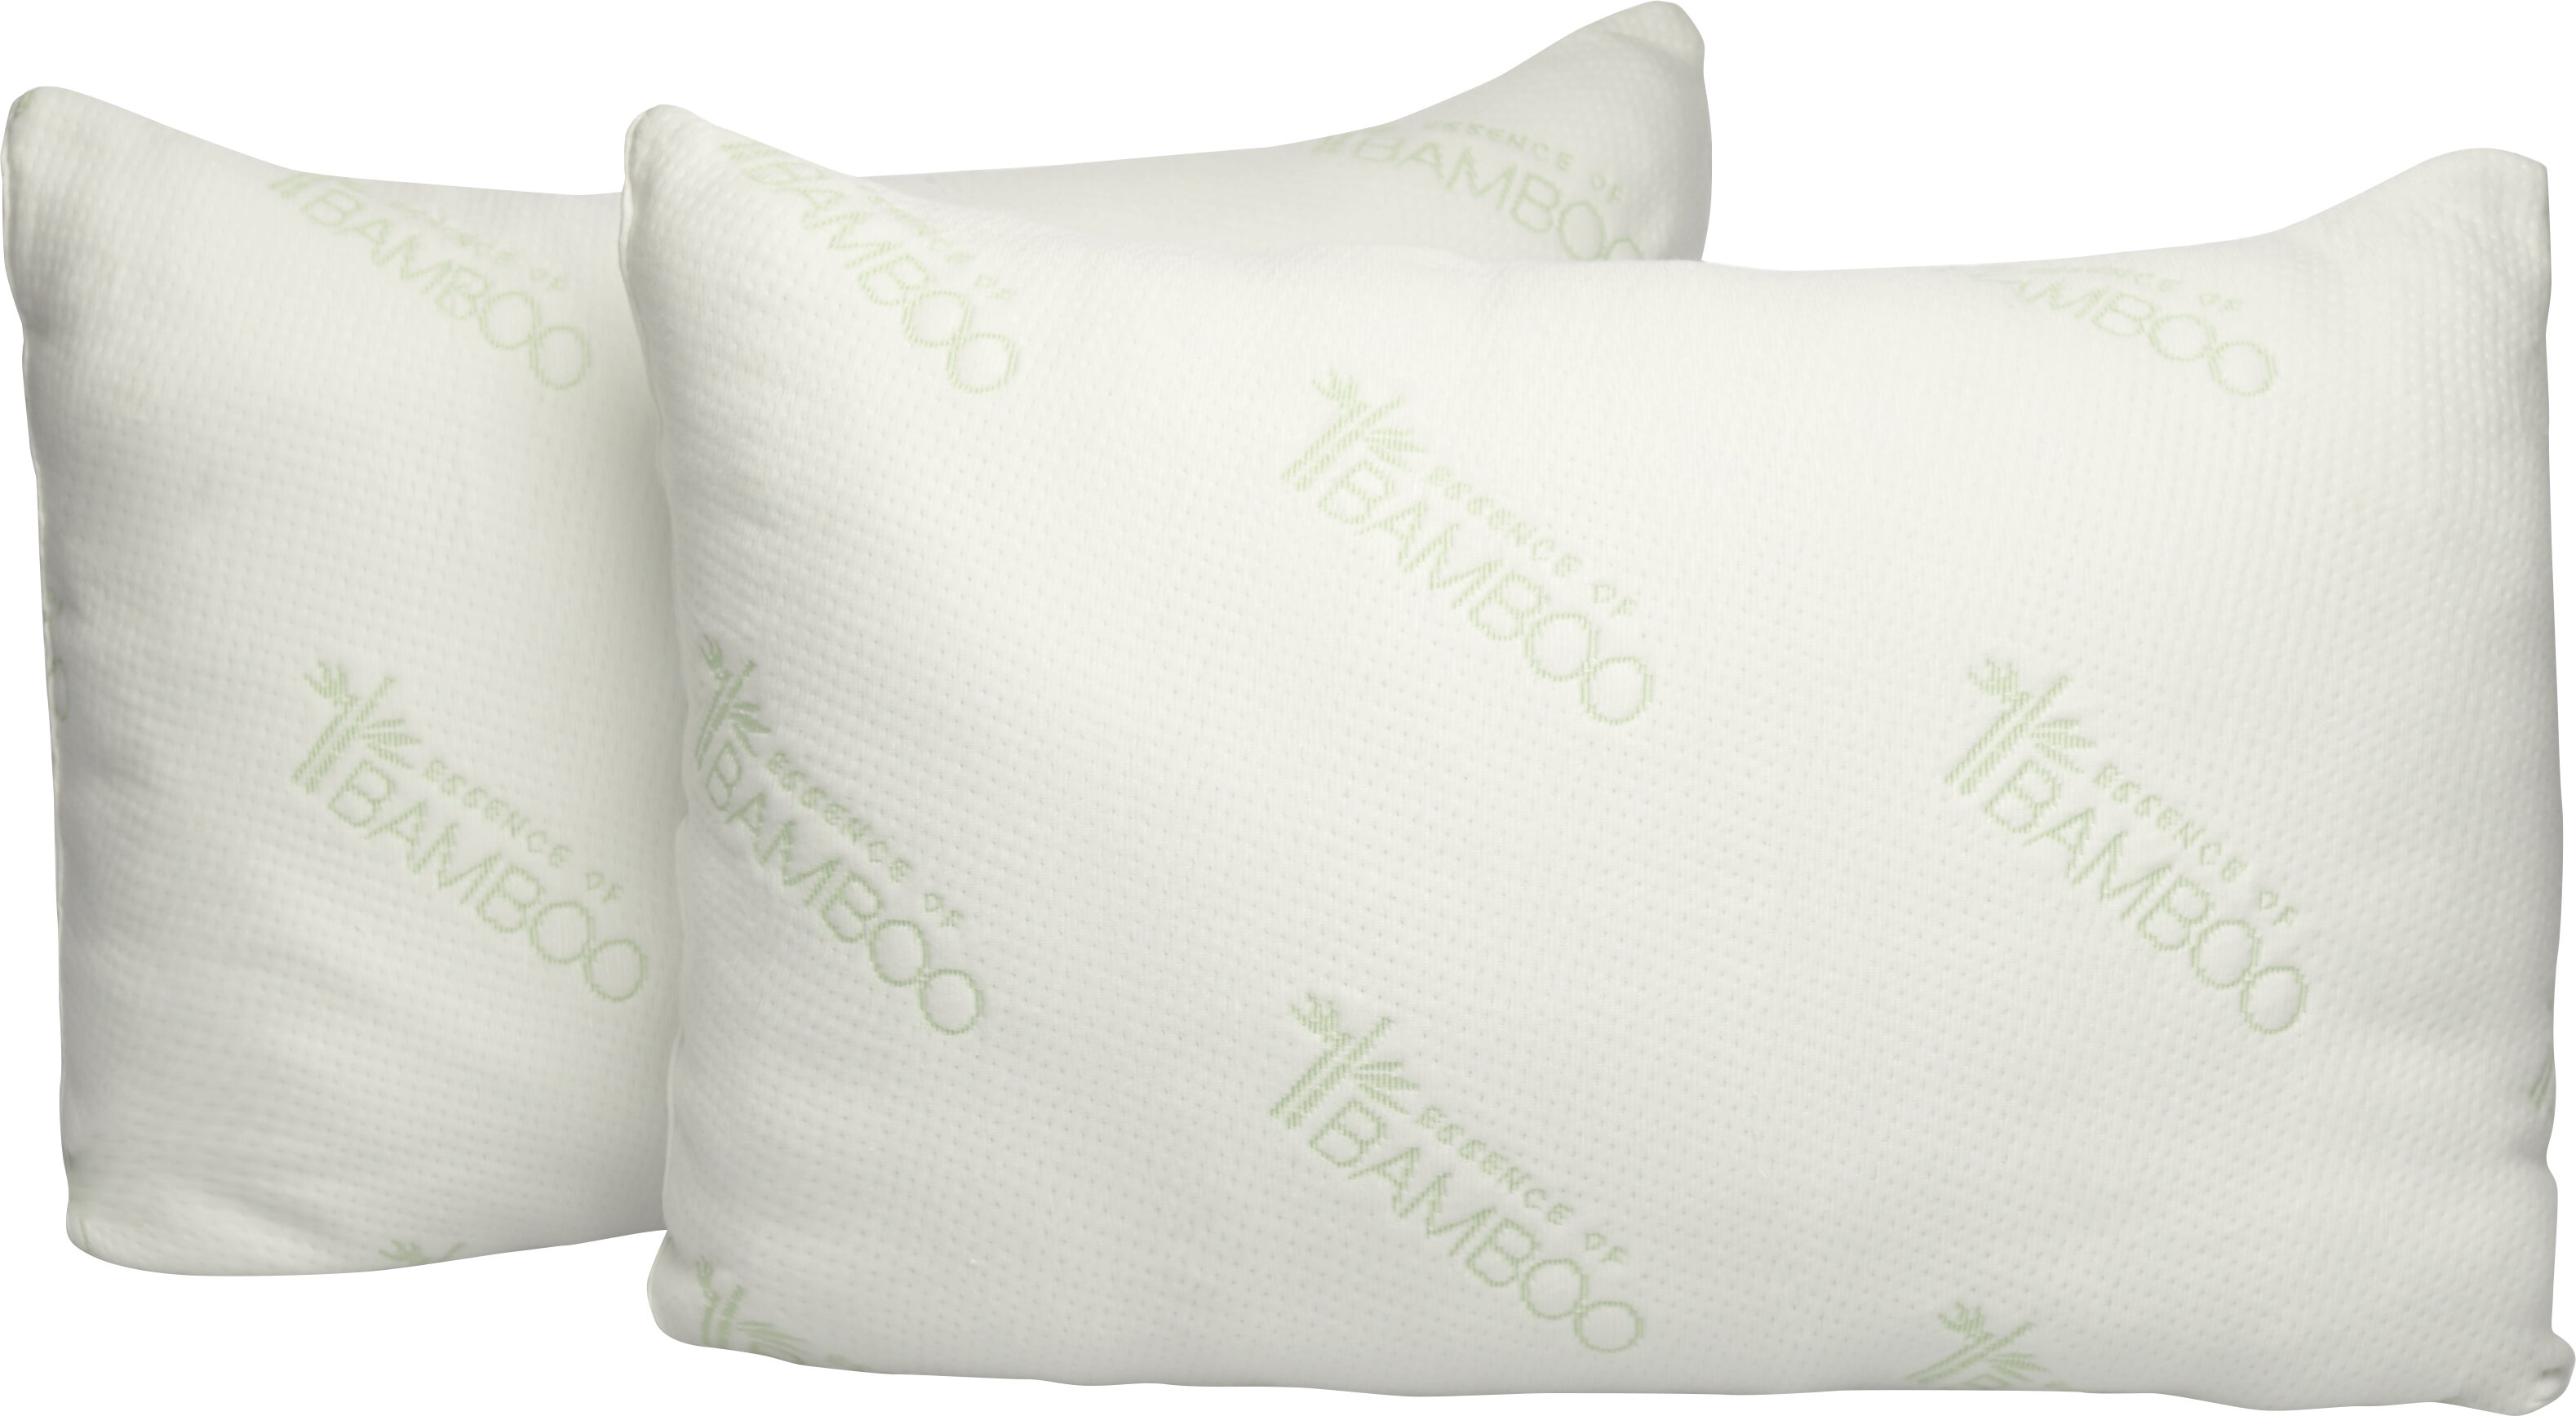 cool is queen smart blanket bamboo reviews cushion best gallery pillow comfort kupon which the